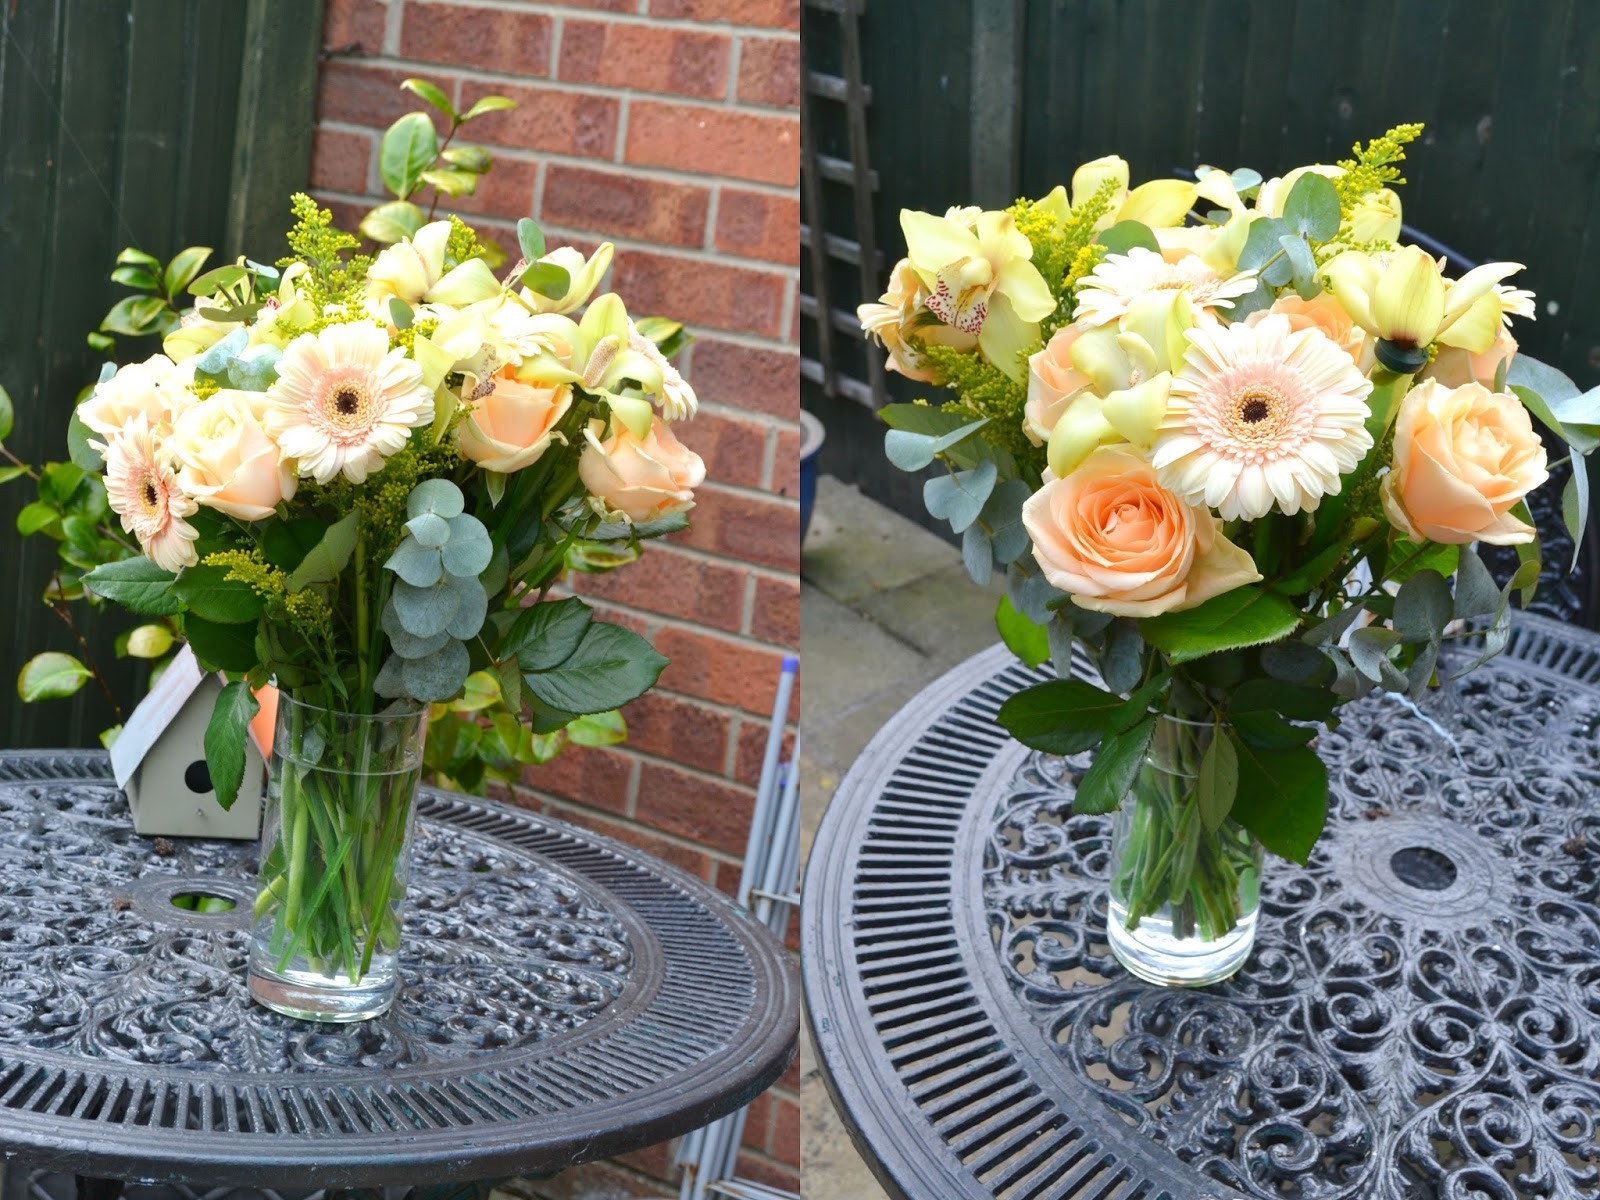 The Ideal Birthday Gift With Prestige Flowers Uk Lifestyle And